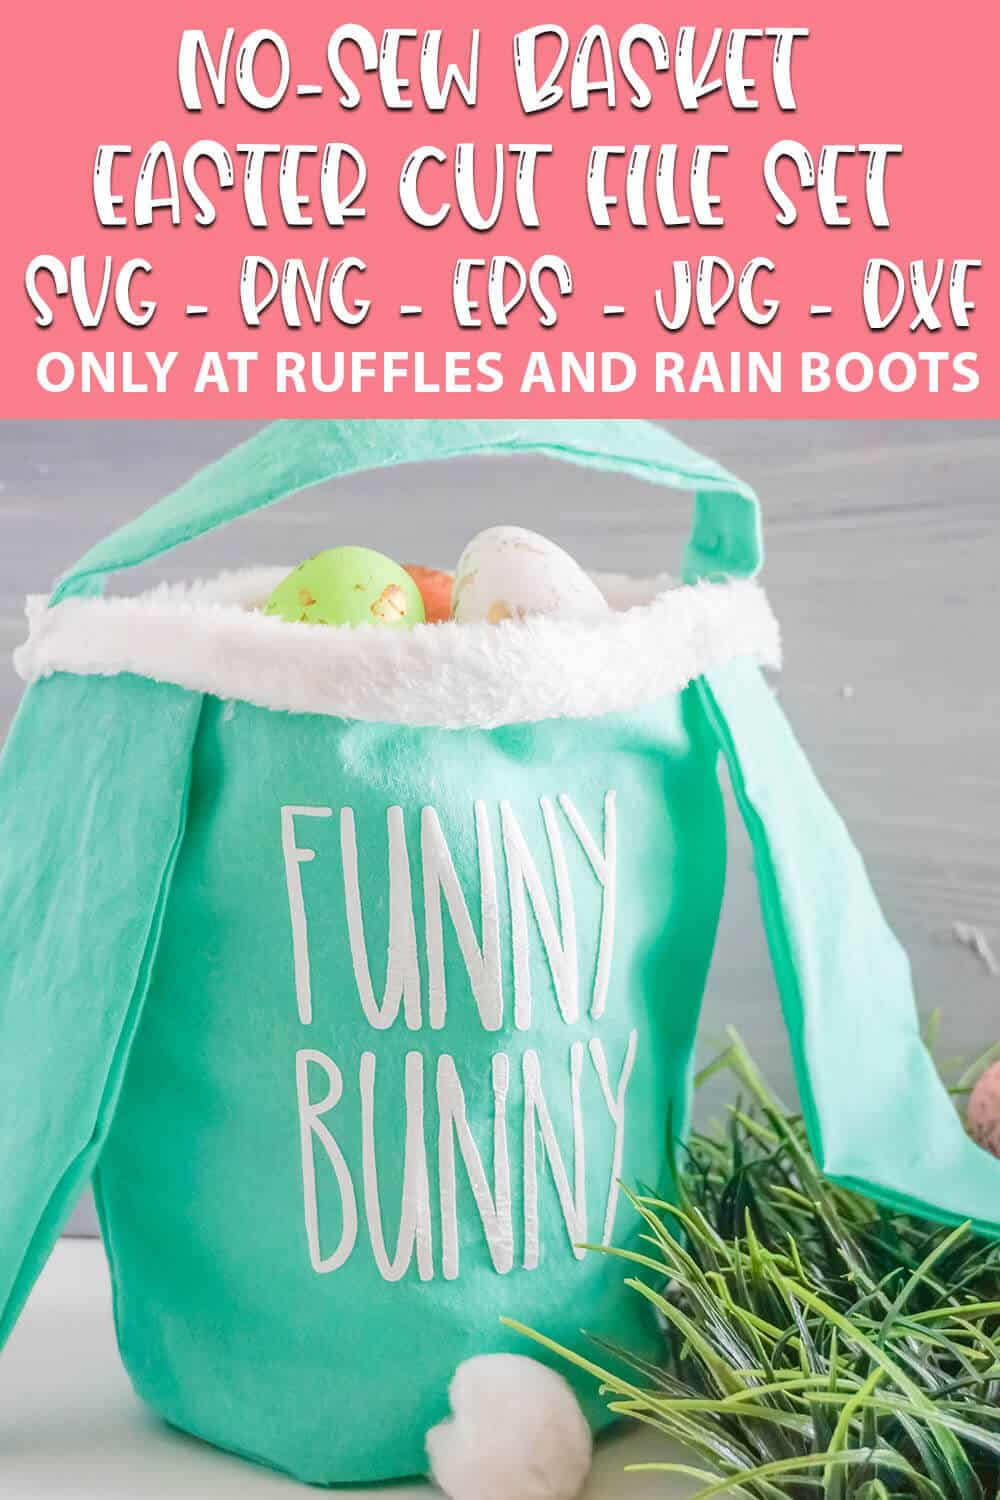 no-sew easter basket with text which reads no-sew basket easter cut file set svg png eps jpg dxf